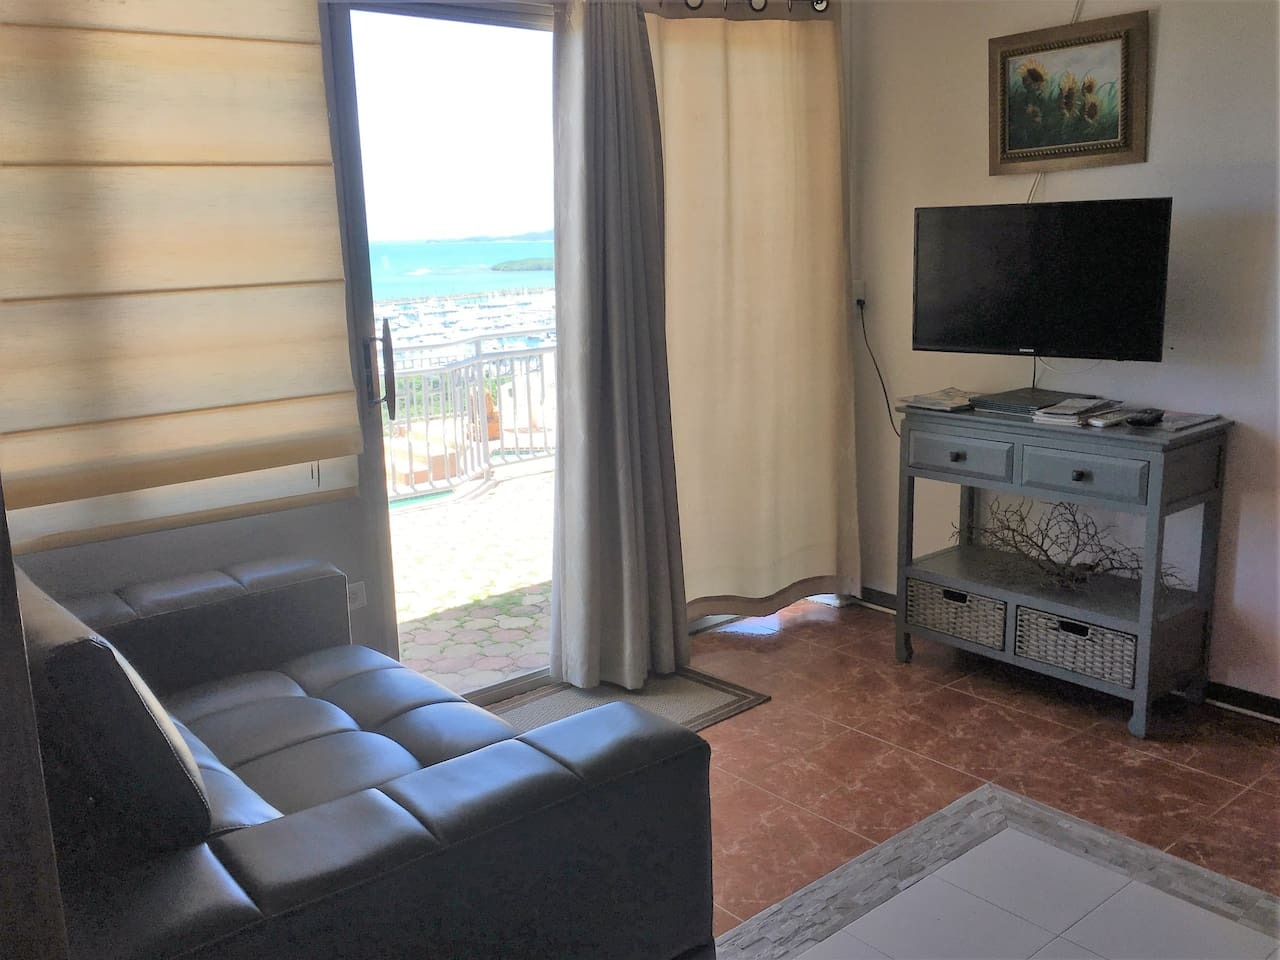 the outdoors inside apartments for rent in fajardo fajardo apartments for rent in fajardo fajardo puerto rico